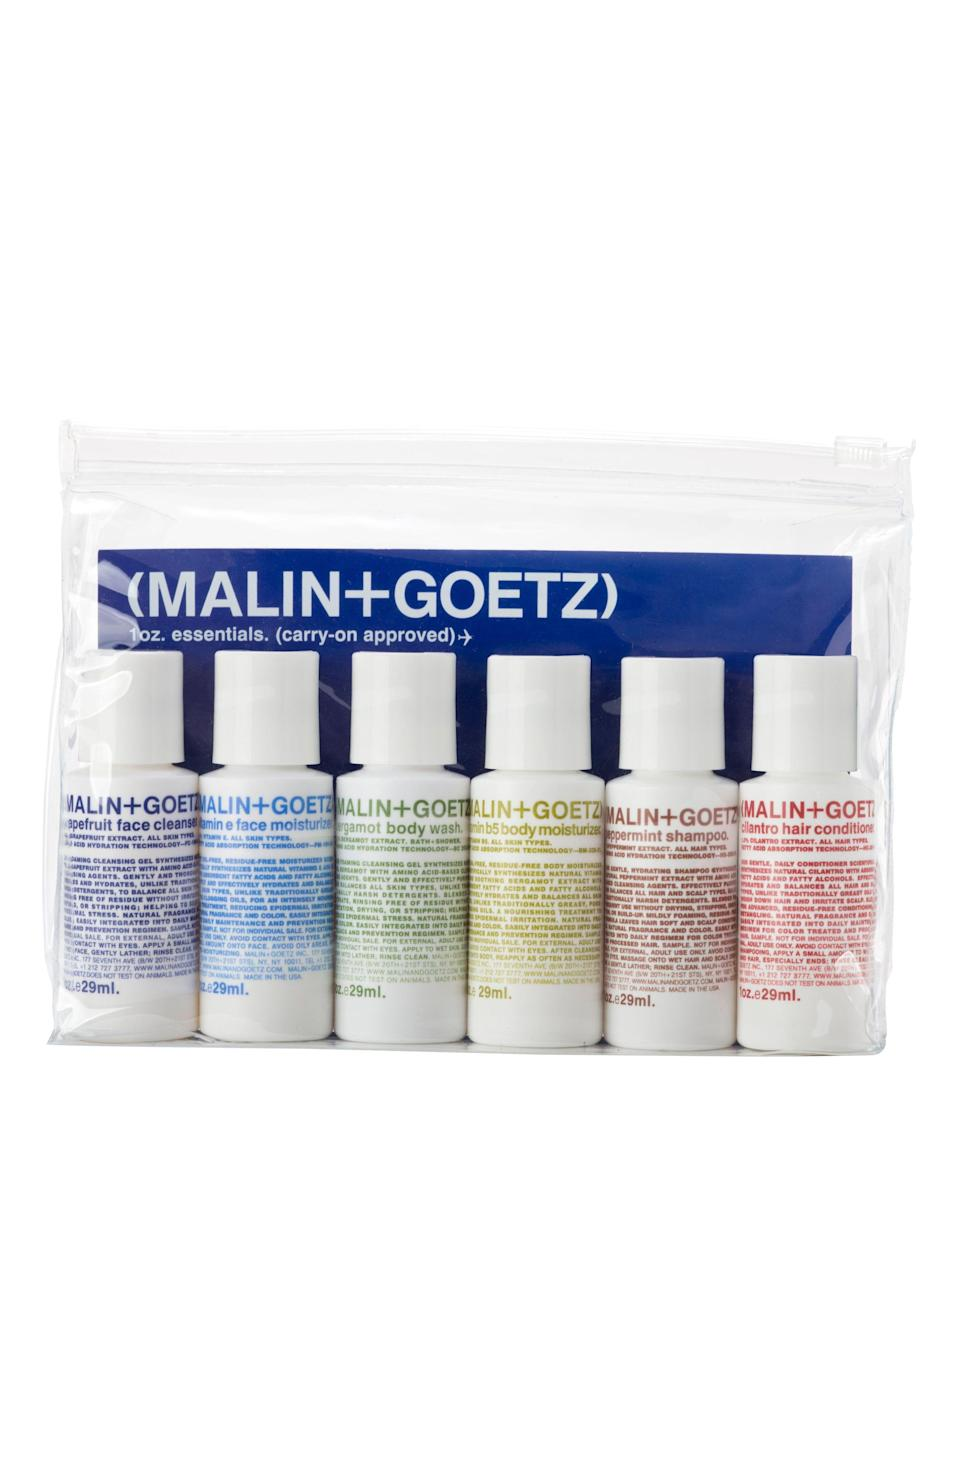 """<p><strong>MALIN+GOETZ</strong></p><p>nordstrom.com</p><p><strong>$32.00</strong></p><p><a href=""""https://go.redirectingat.com?id=74968X1596630&url=https%3A%2F%2Fshop.nordstrom.com%2Fs%2Fmalingoetz-travel-size-essential-kit%2F4486017&sref=https%3A%2F%2Fwww.oprahmag.com%2Flife%2Frelationships-love%2Fg26825396%2Fgifts-for-dad%2F"""" rel=""""nofollow noopener"""" target=""""_blank"""" data-ylk=""""slk:Shop Now"""" class=""""link rapid-noclick-resp"""">Shop Now</a></p><p>With everything from grapefruit face cleanser to peppermint shampoo and bergamot body wash, Dad won't have to skimp out on carrying his favorite wellness products on his next trip. Plus these perfectly-sized bottles are easily refillable.</p>"""